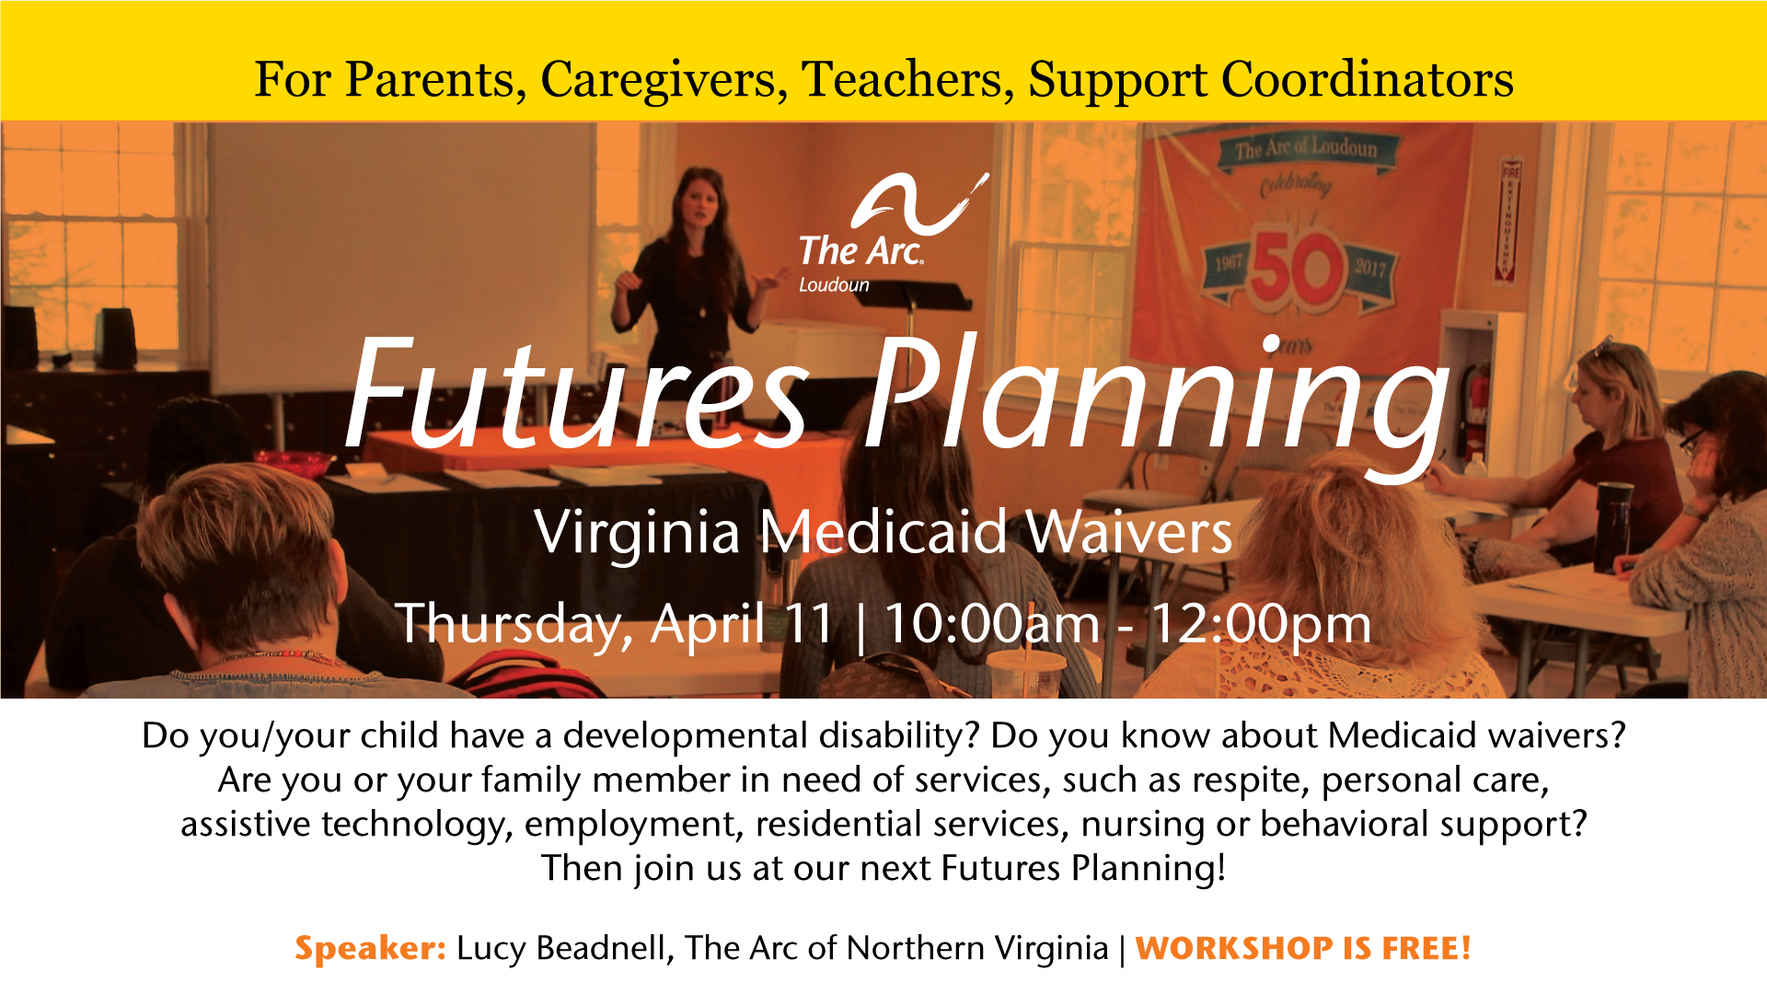 Futures Planning on April 11: Virginia Medicaid Waivers image